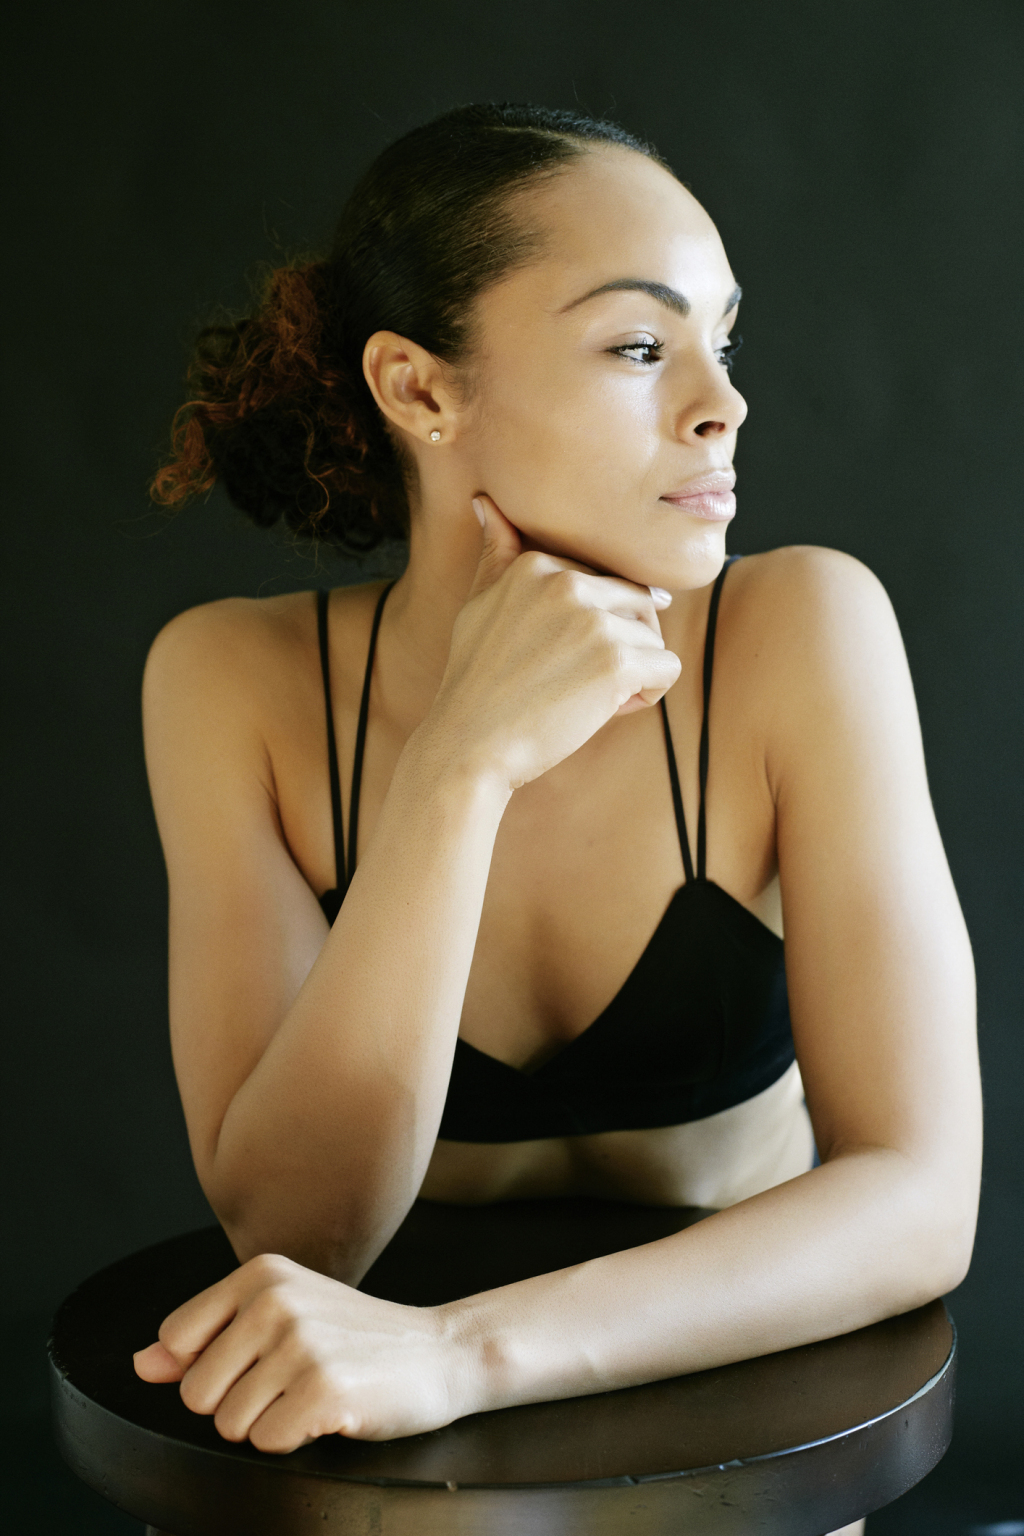 Pensive Mixed Race woman wearing bra leaning on stool